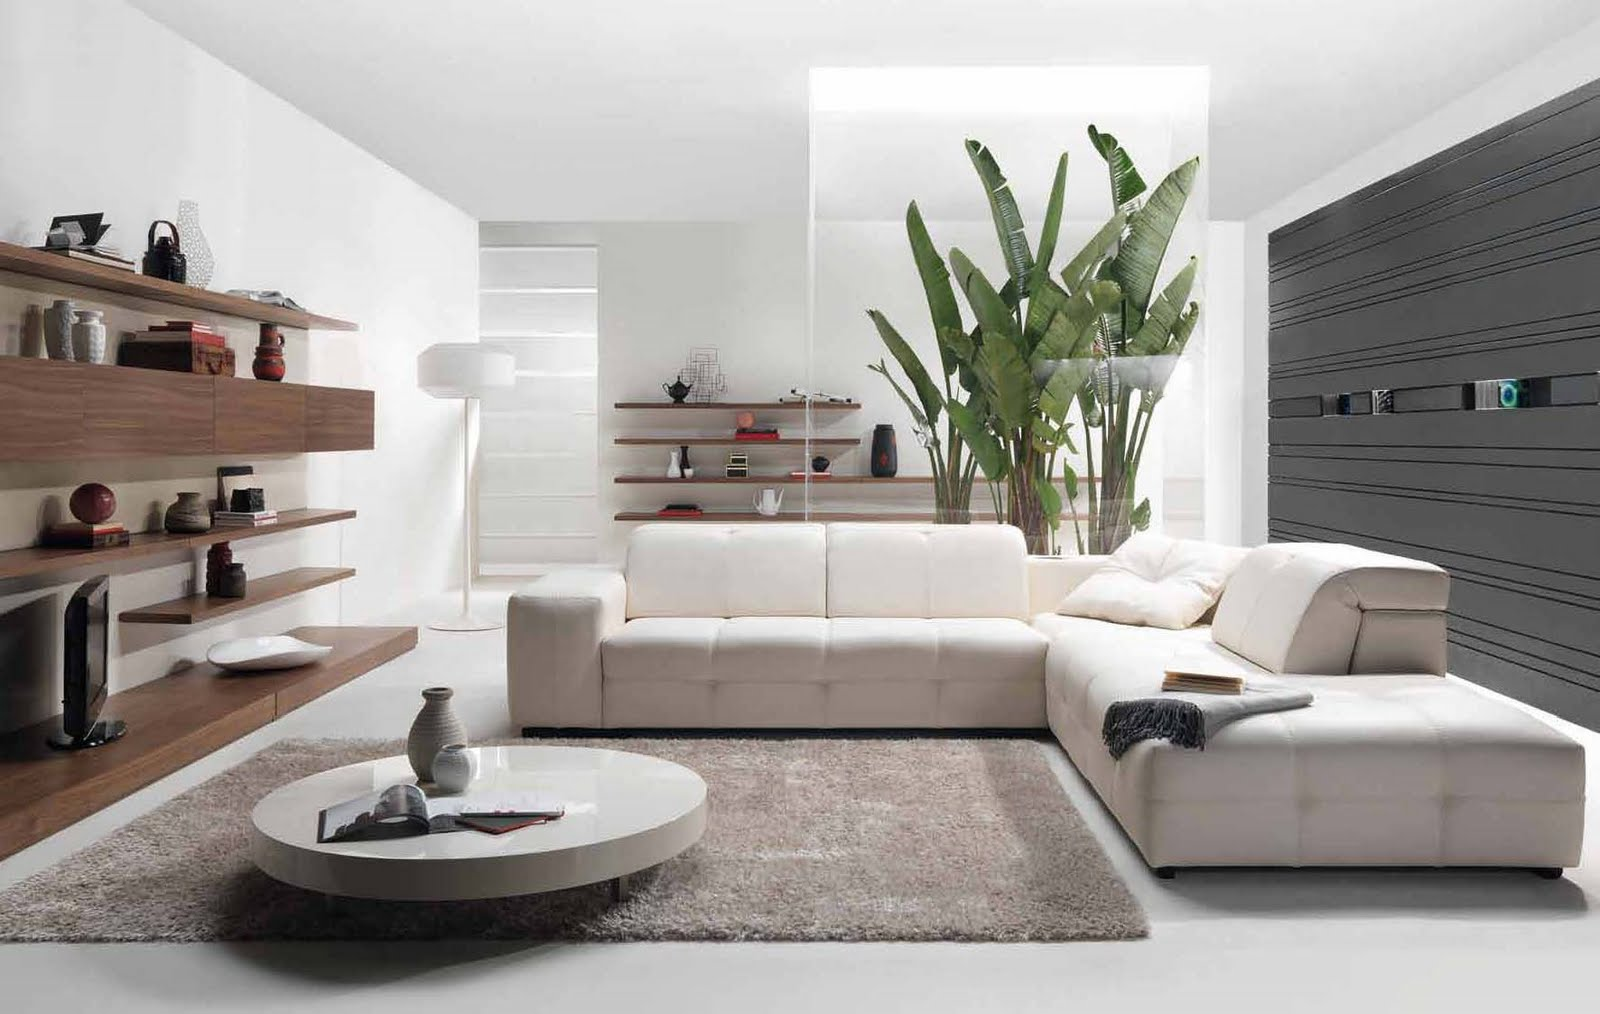 Future house design modern living room interior design for New design interior living room